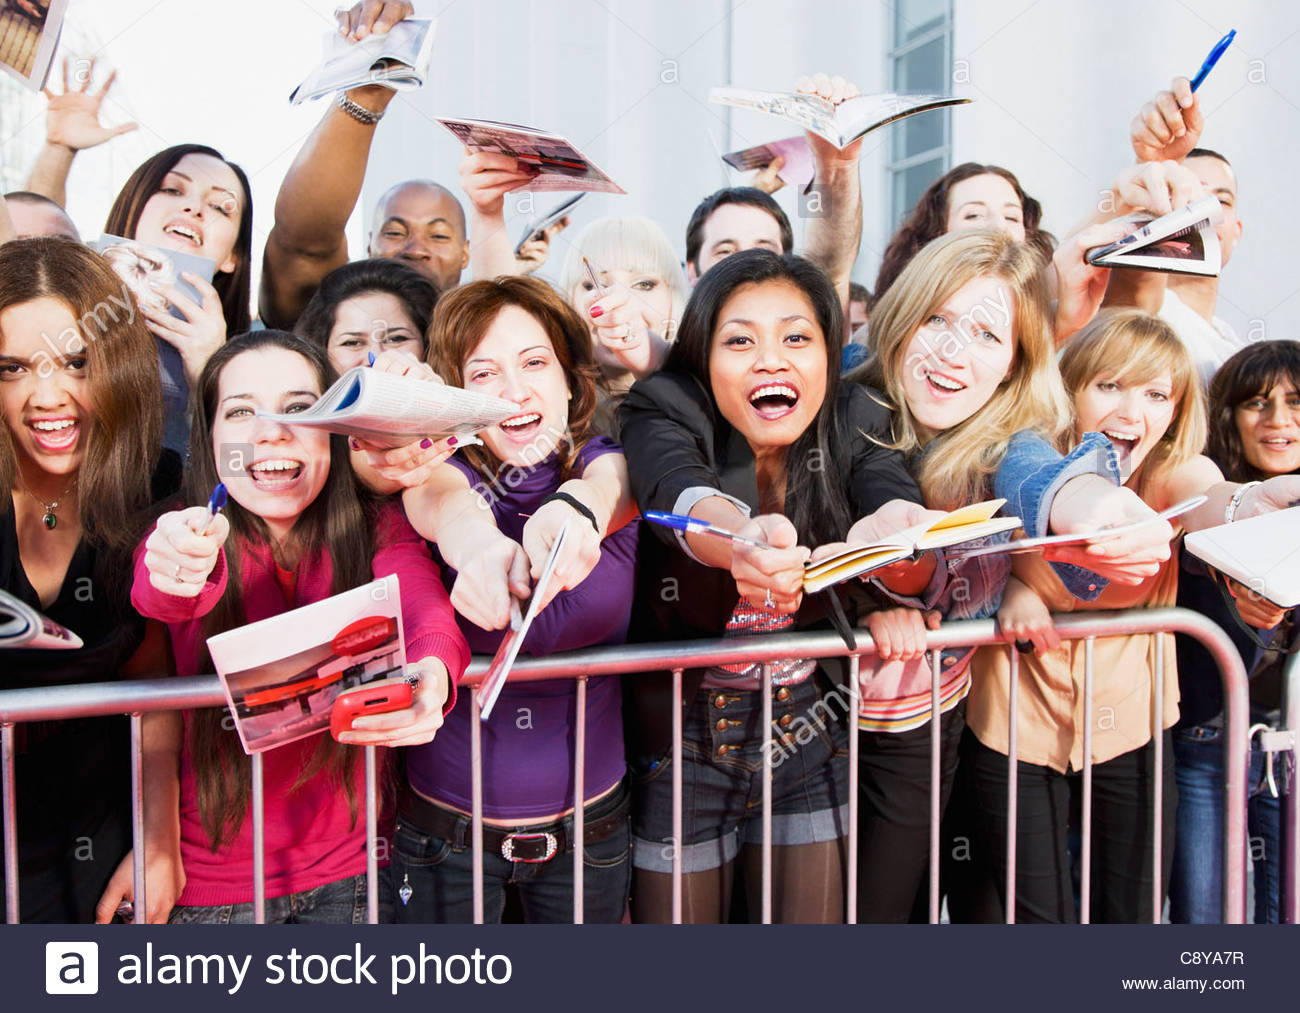 Fans offering notepads for celebrity's signature behind barrier - Stock Image